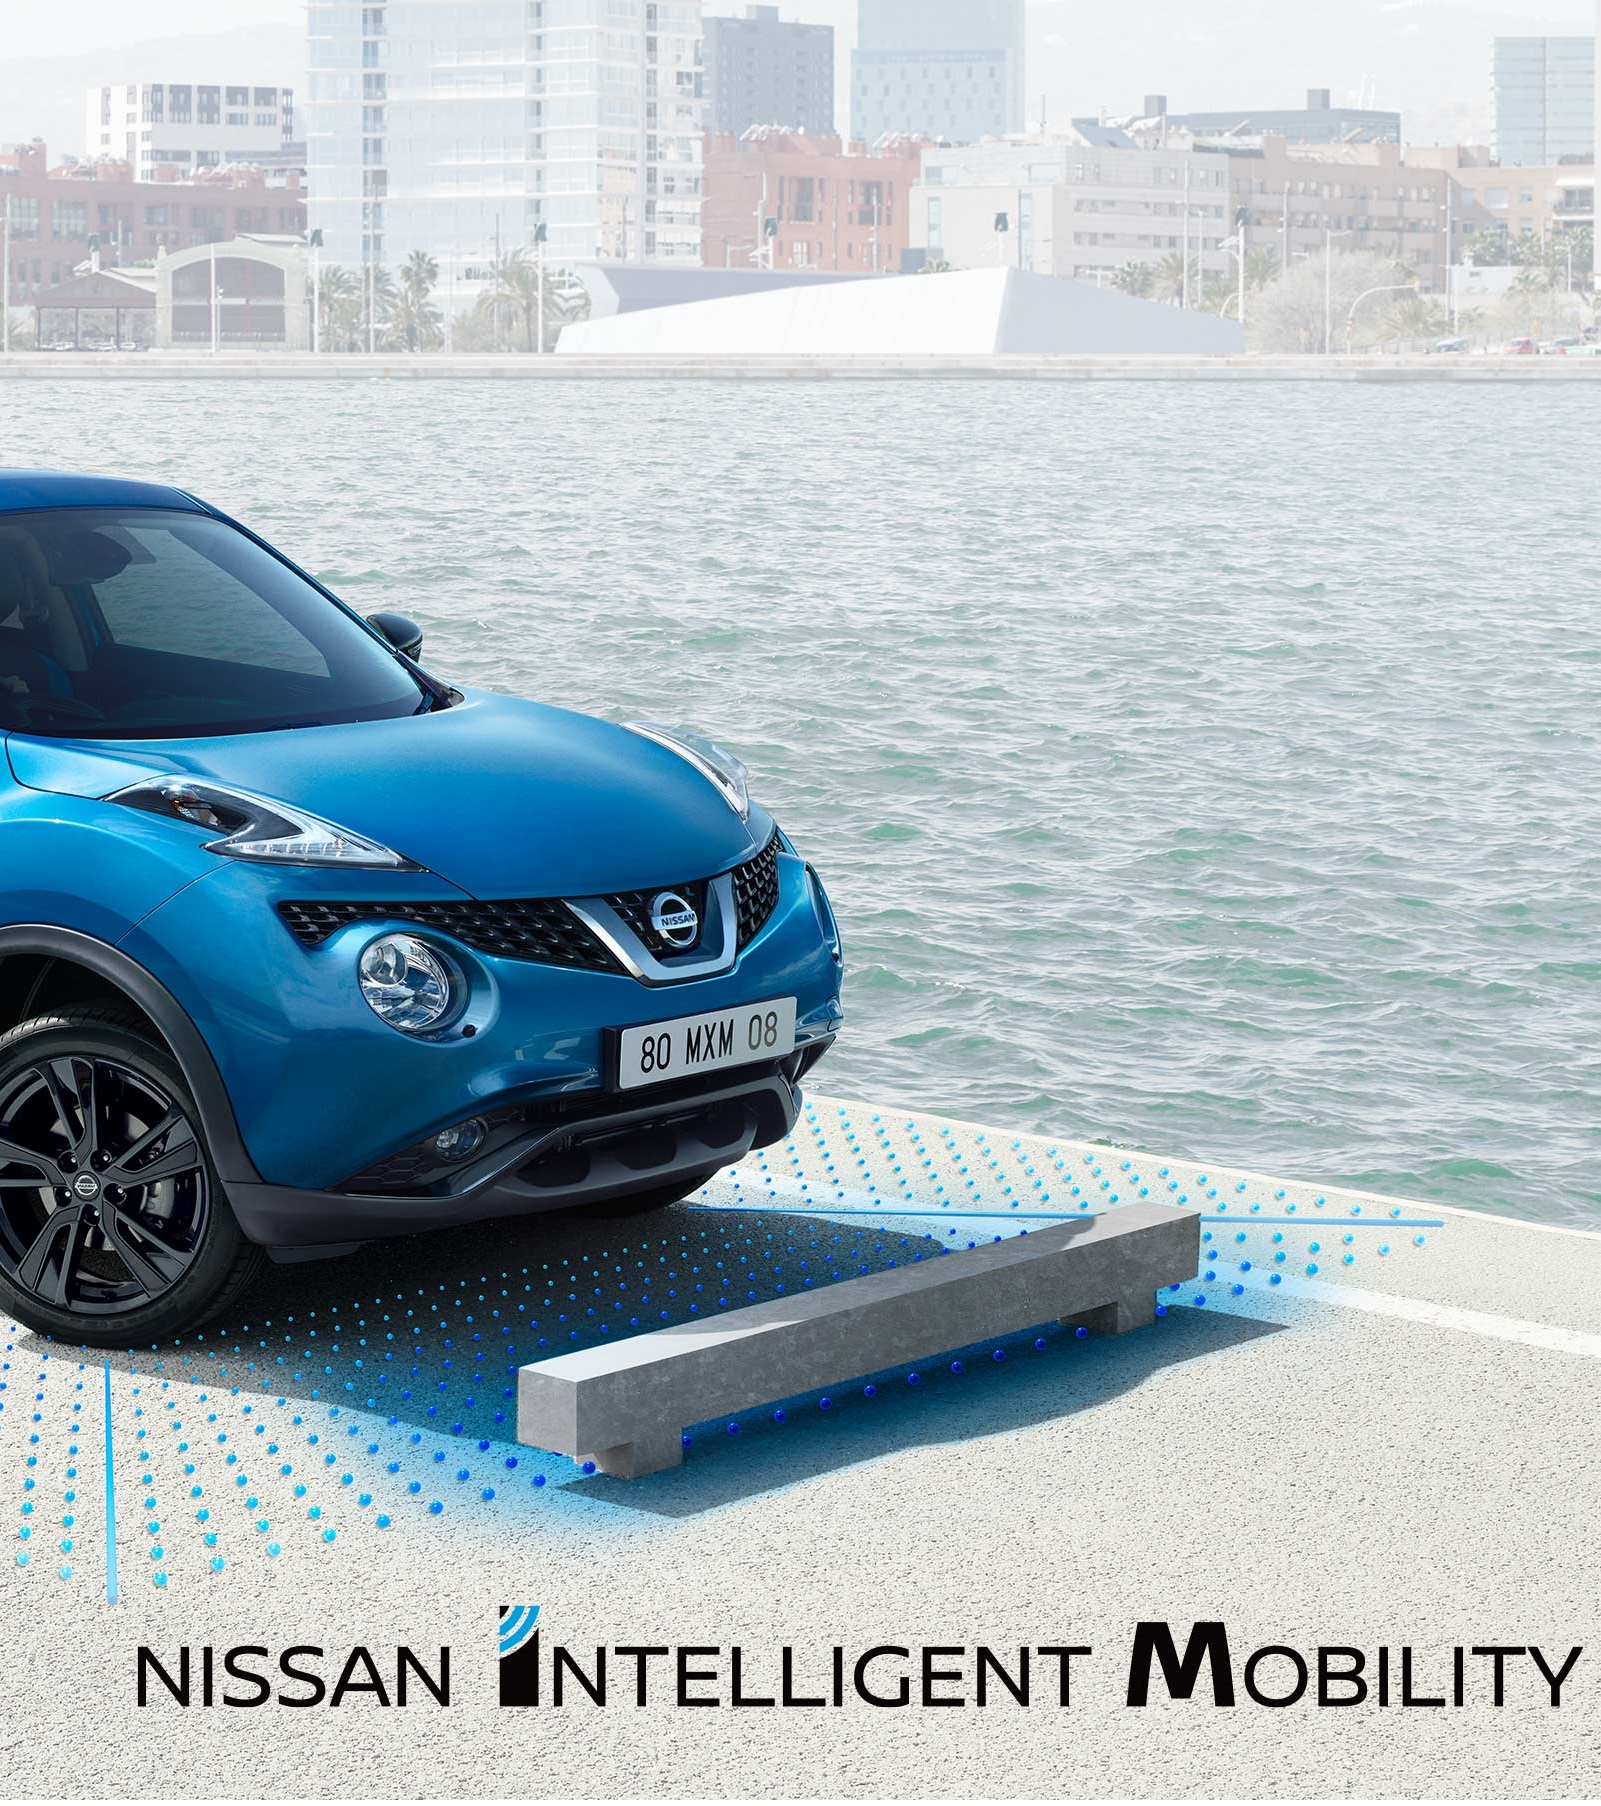 New Nissan Juke crop of the front of the car